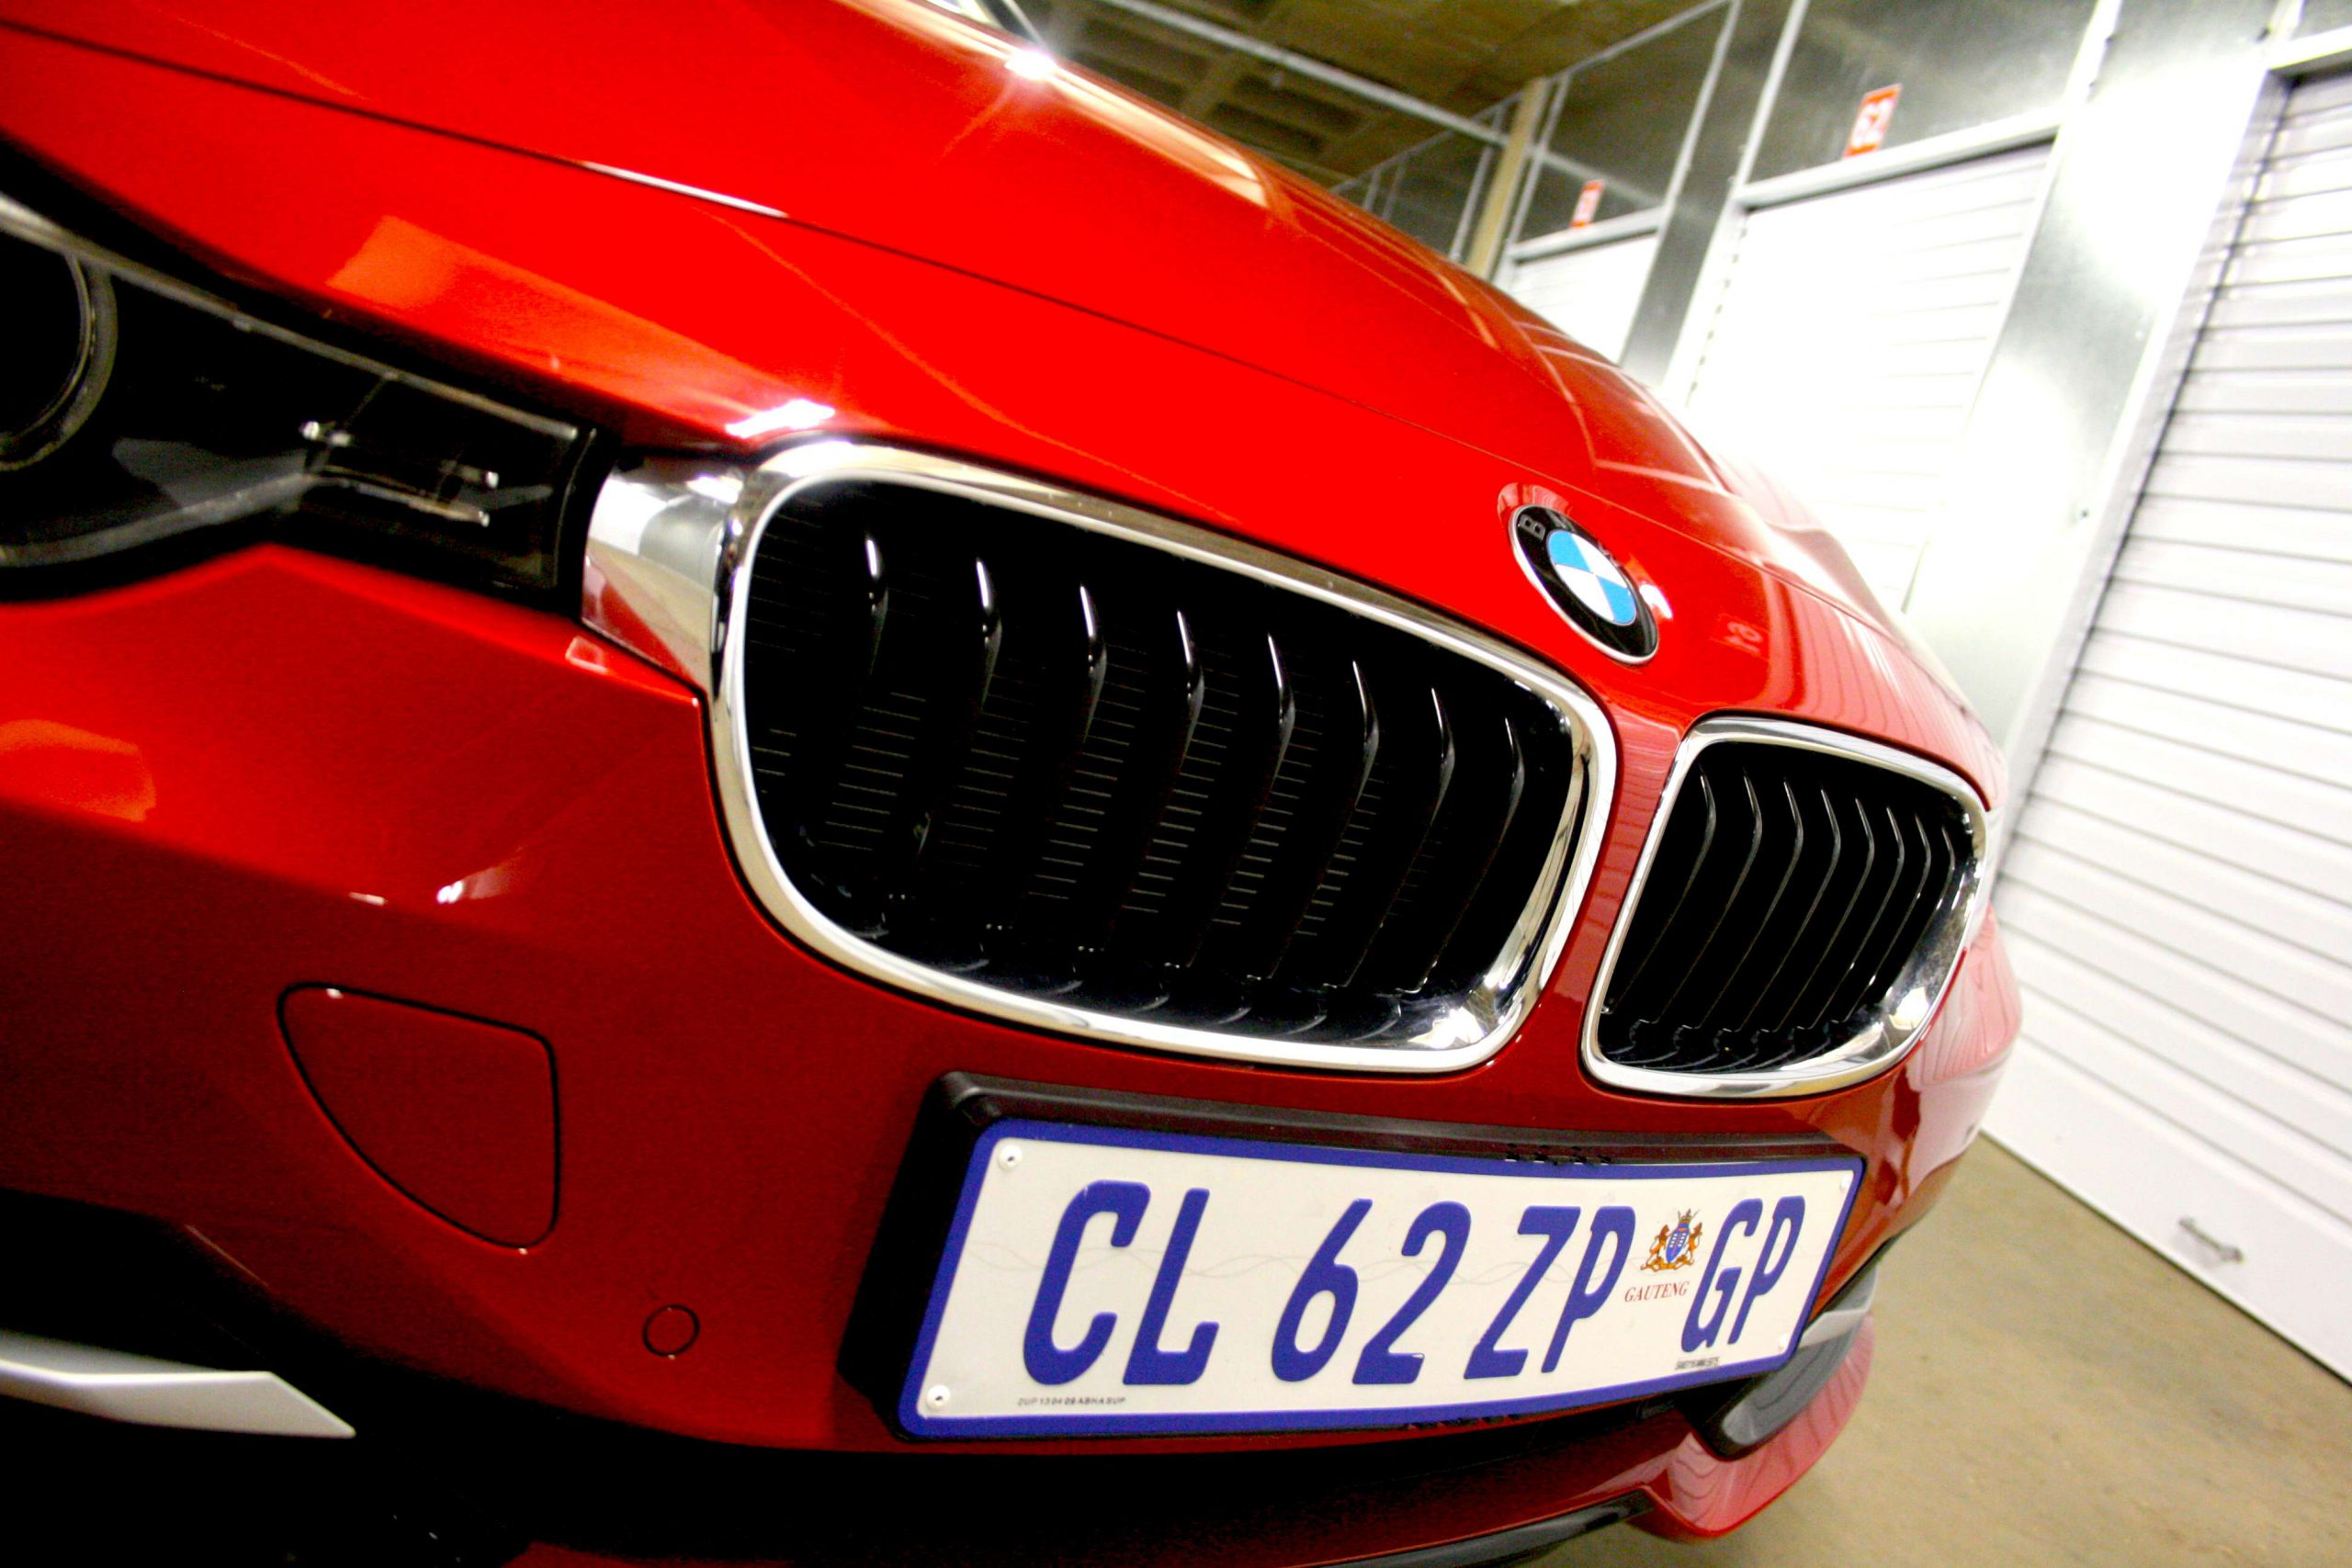 BMW 316i (2013): New Car Review – Surf4cars